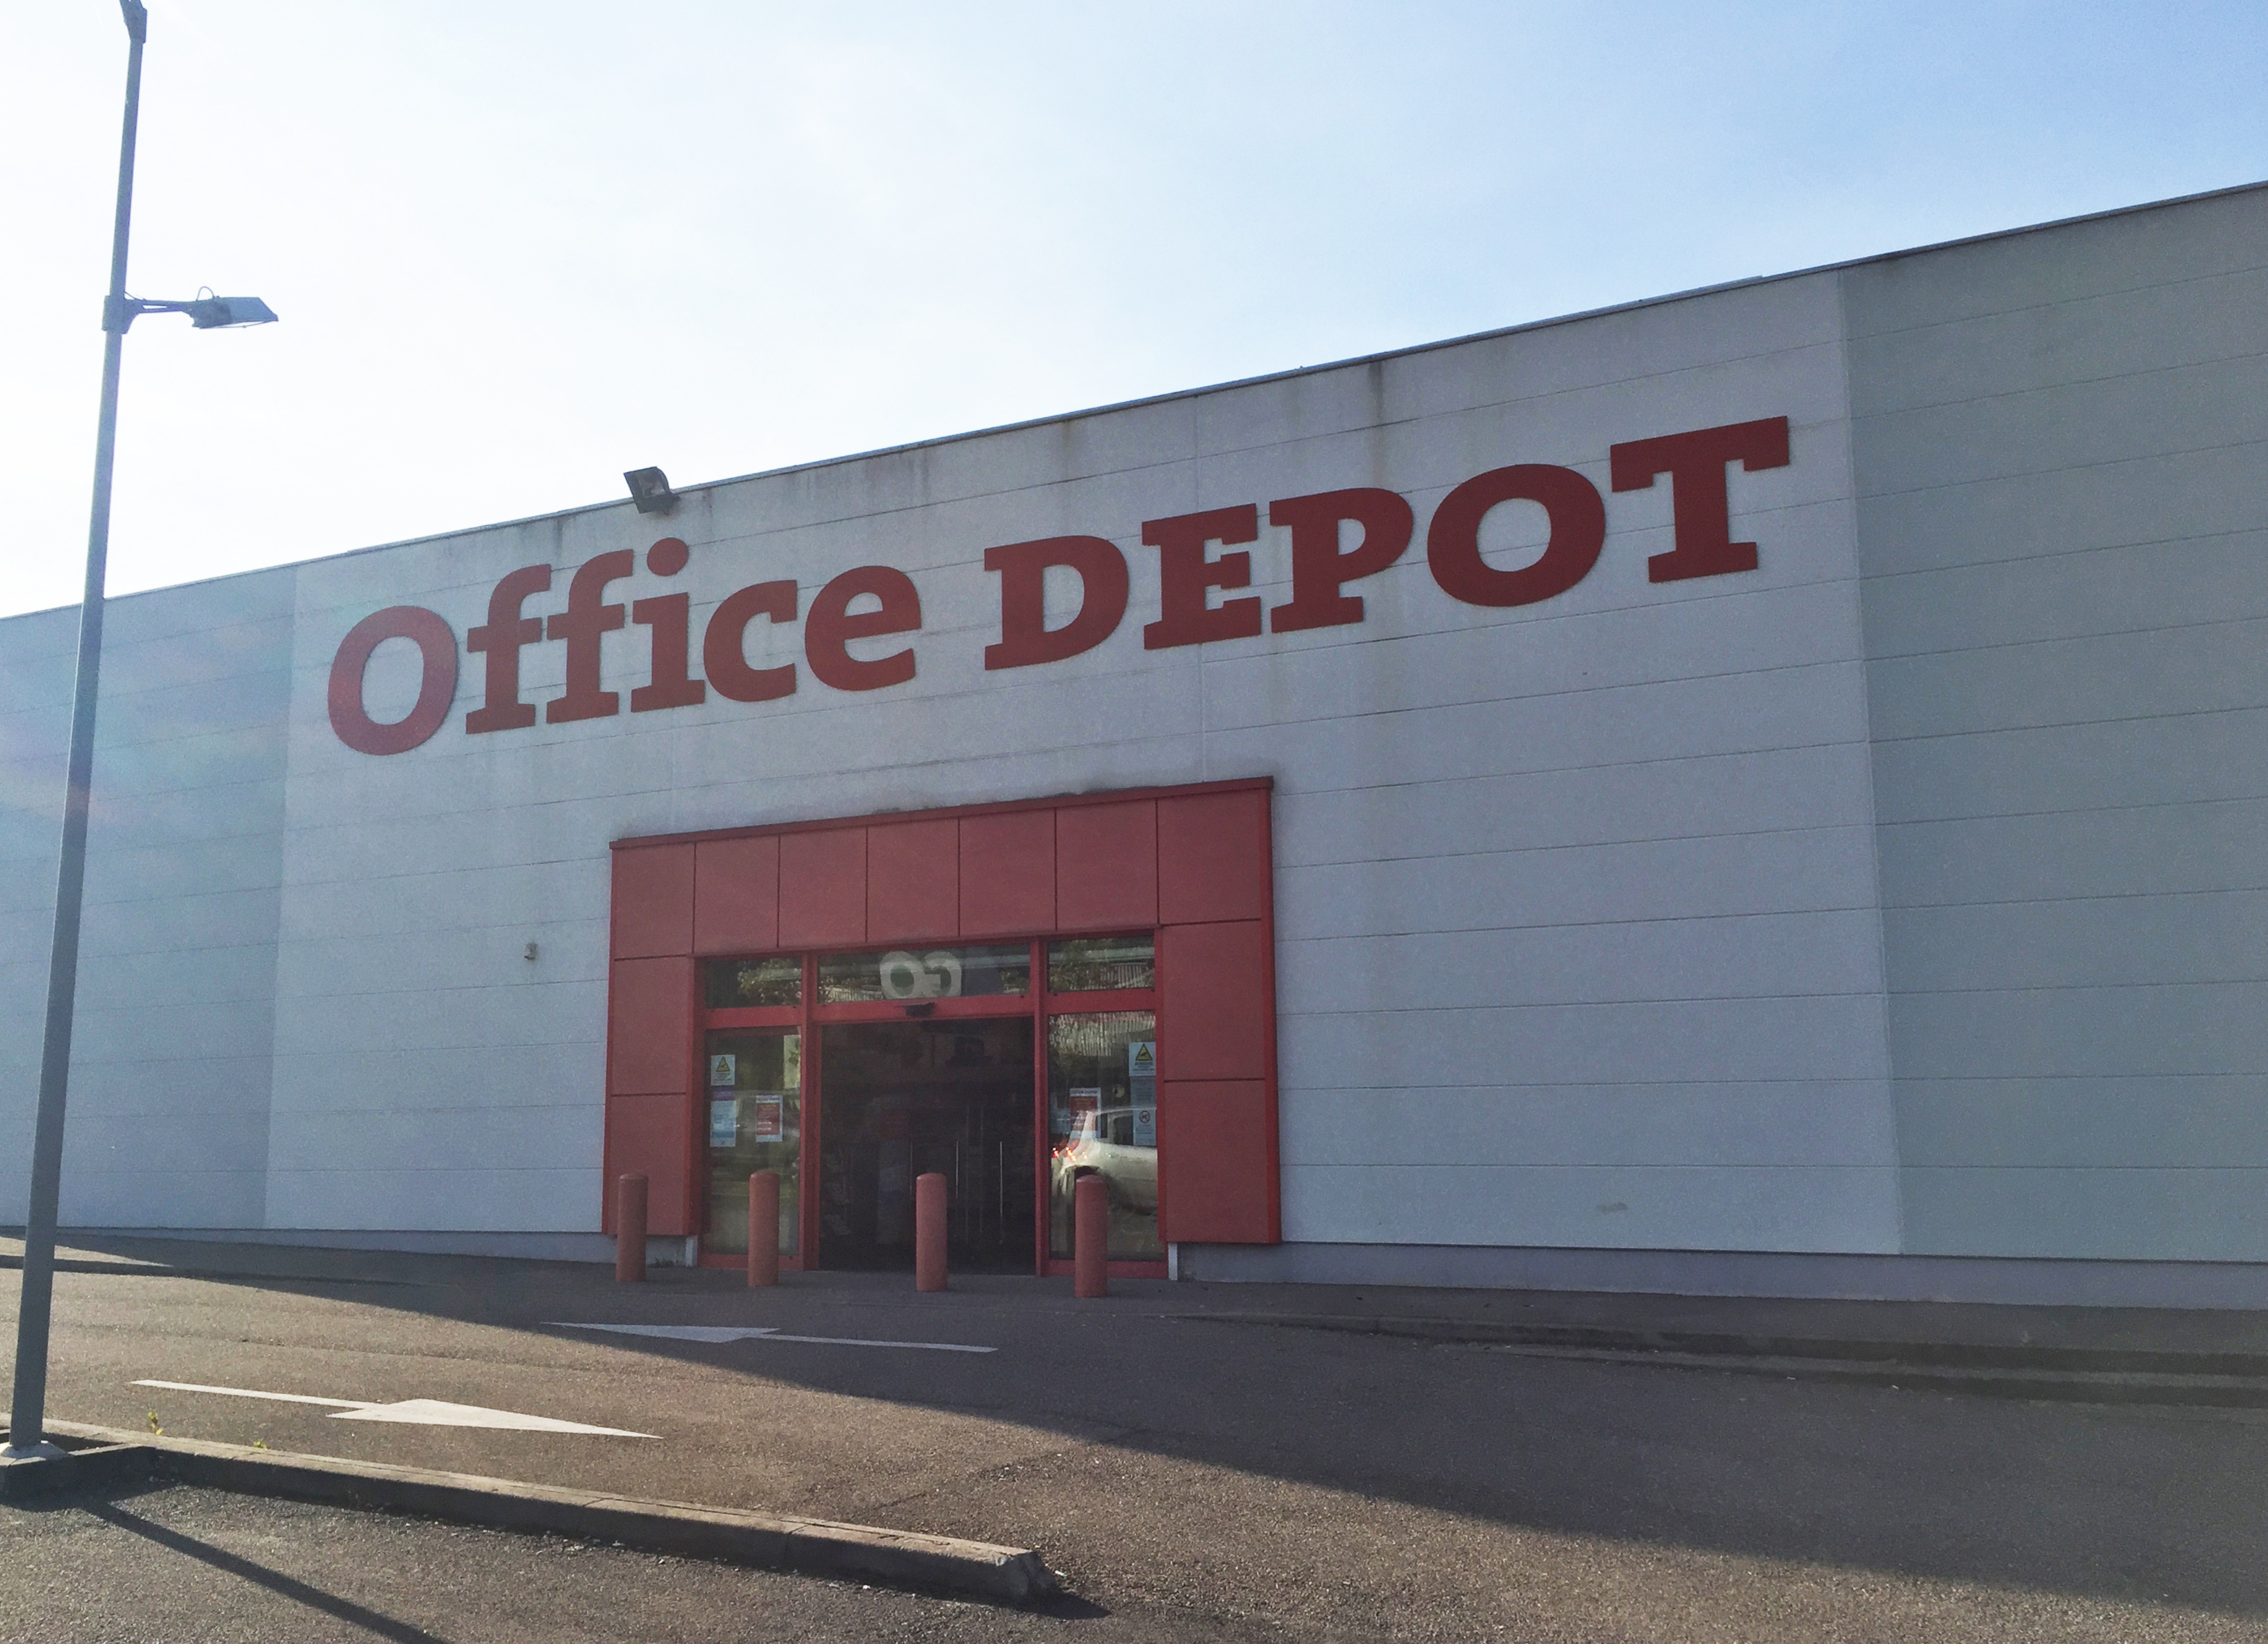 Magasin office depot nancy fournitures mobiliers de bureau